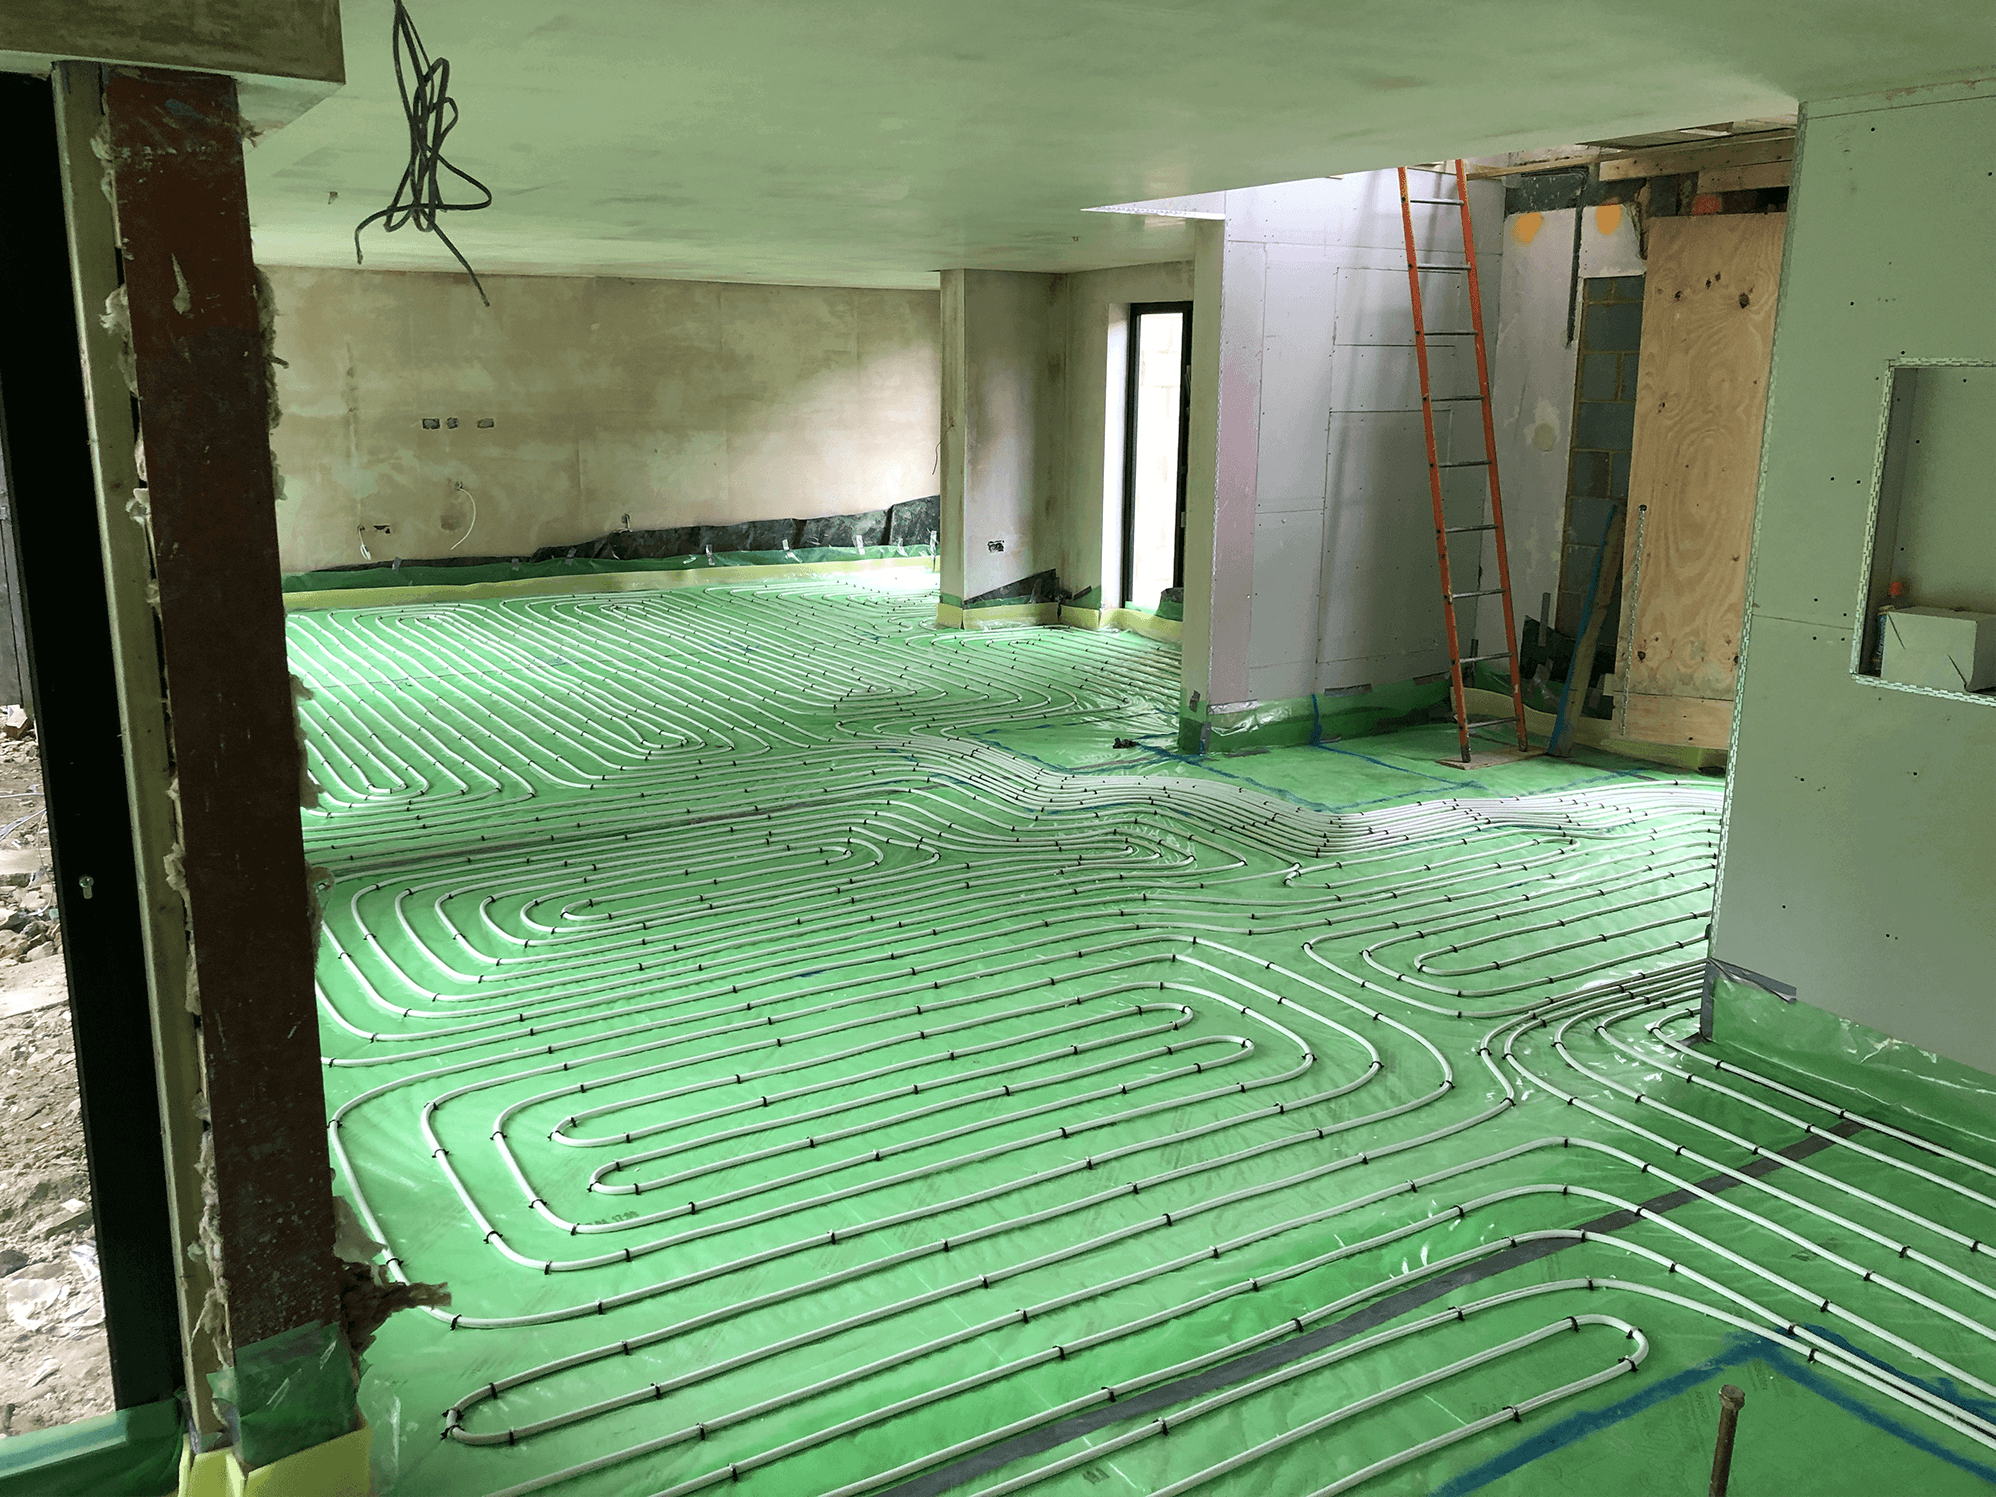 Plumbing underfloor heating Surrey